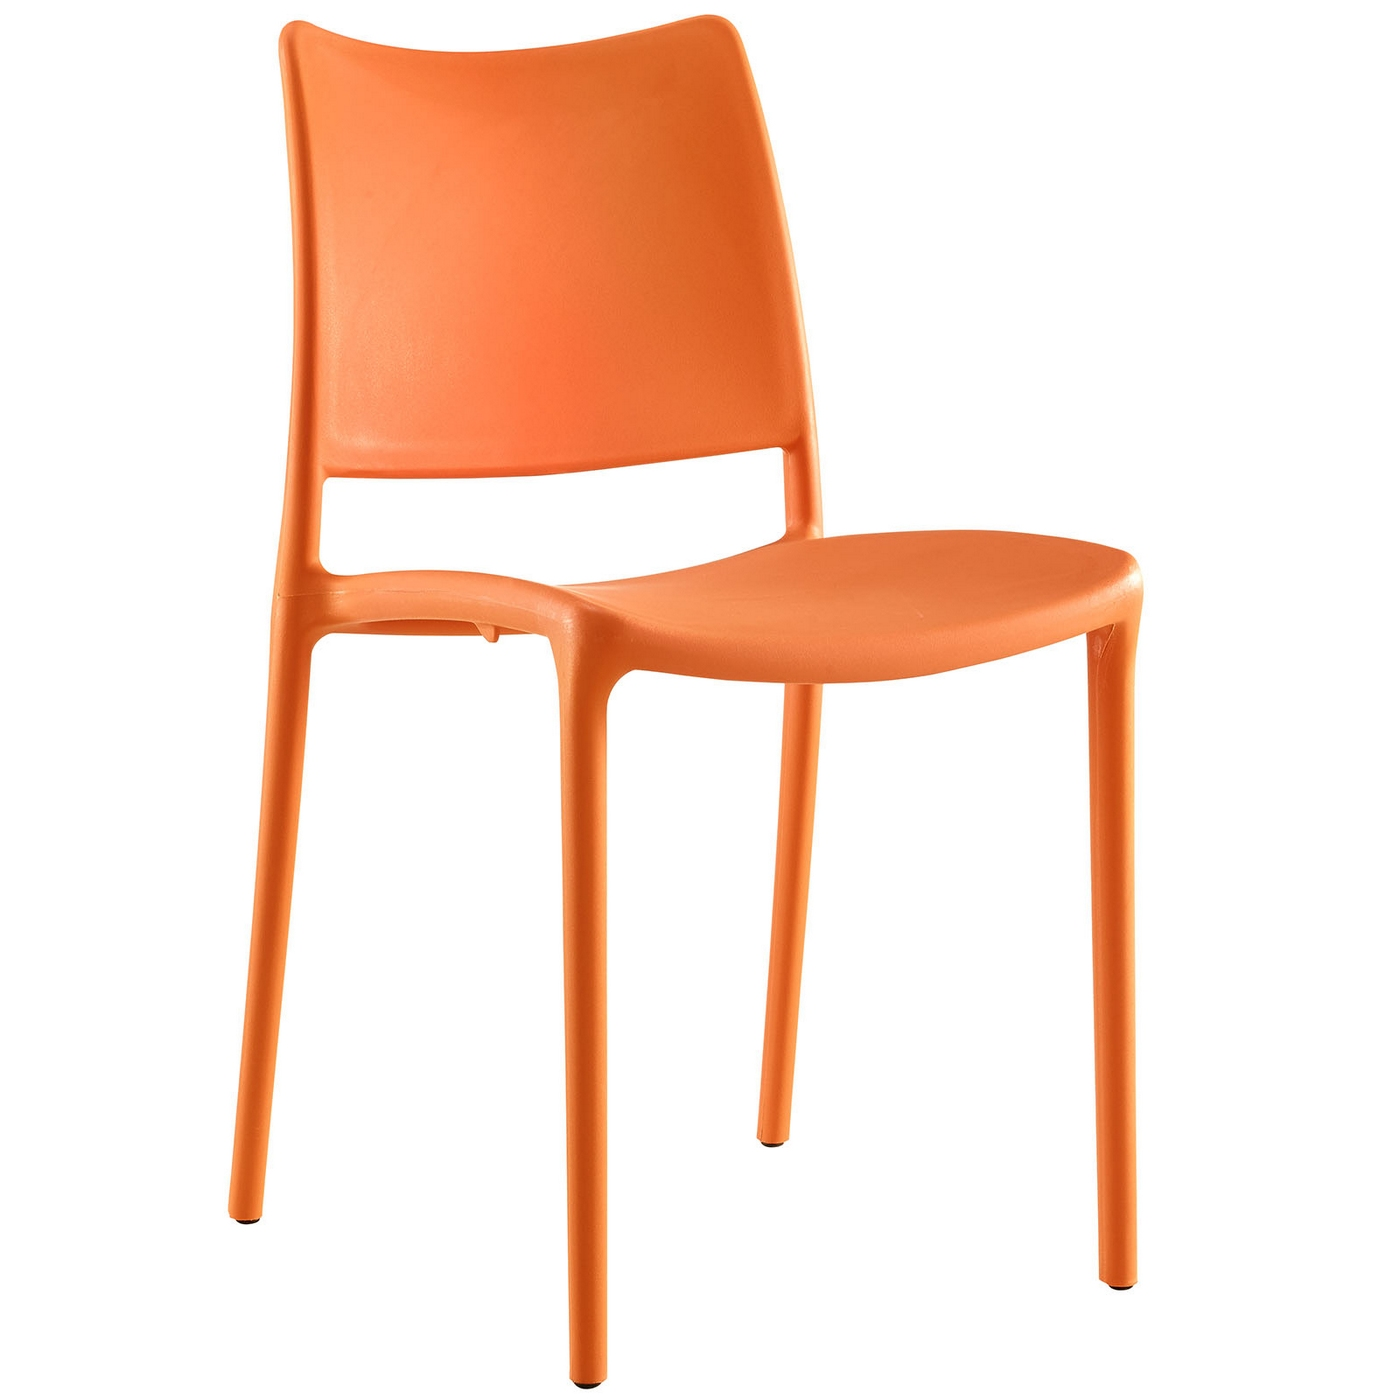 #C54906 Hipster Contemporary Stackable Plastic Dining Side Chair Orange with 1400x1400 px of Recommended Plastic Stackable Stools 14001400 save image @ avoidforclosure.info